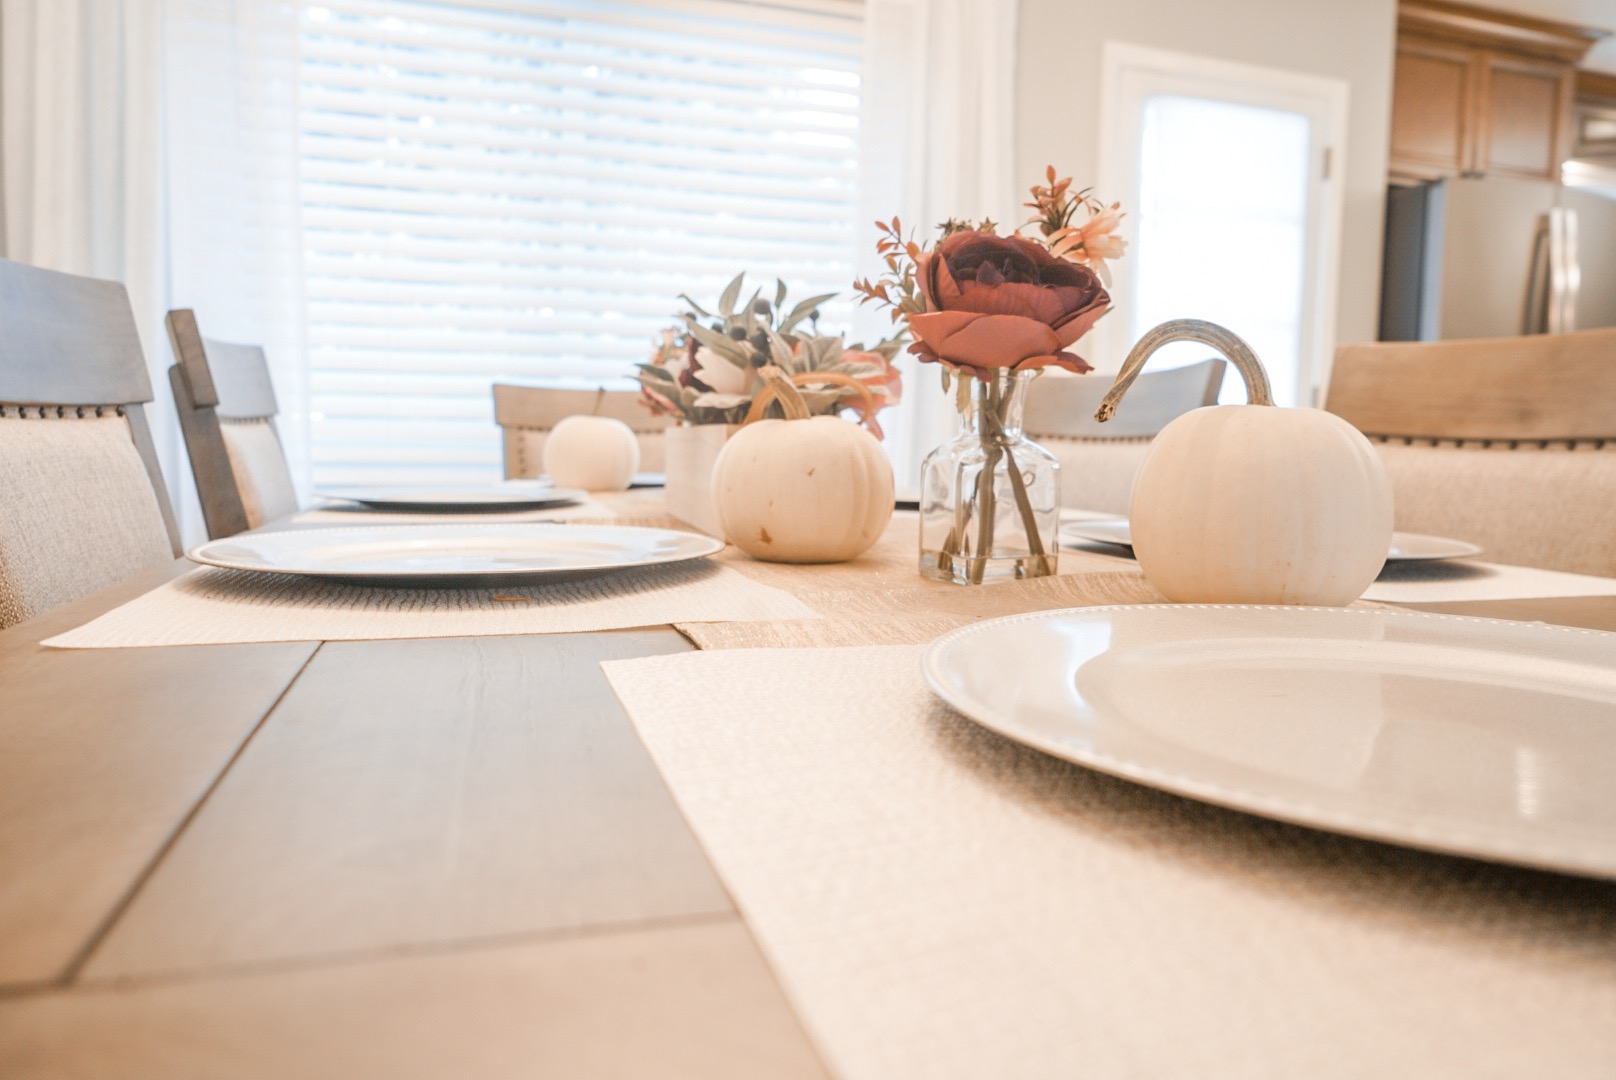 Thanksgiving Table Design for Under $50